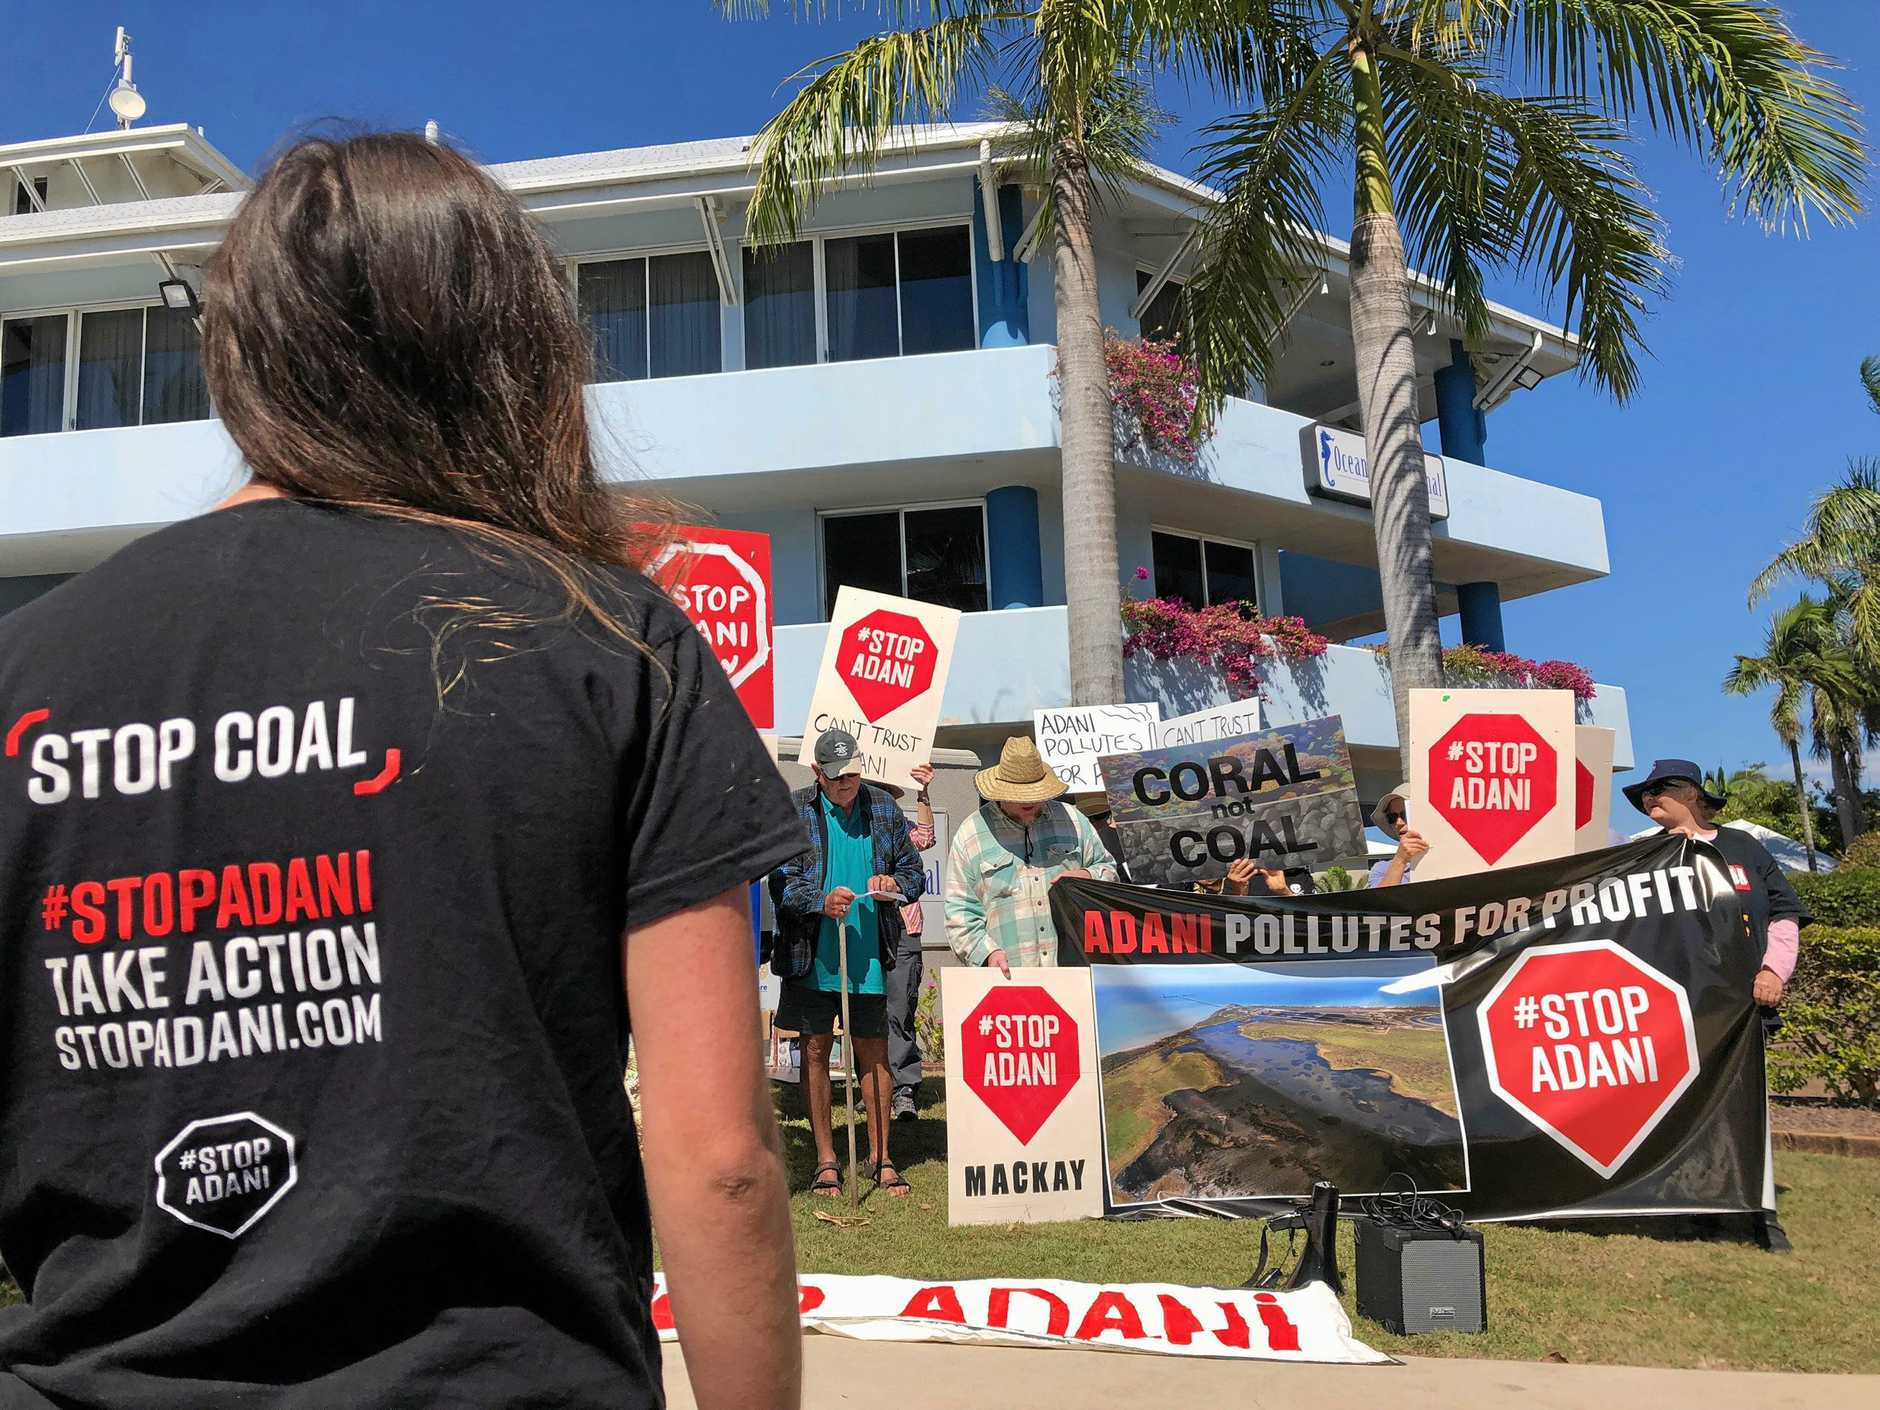 A protest against the controversial Adani carmichael coal mine.